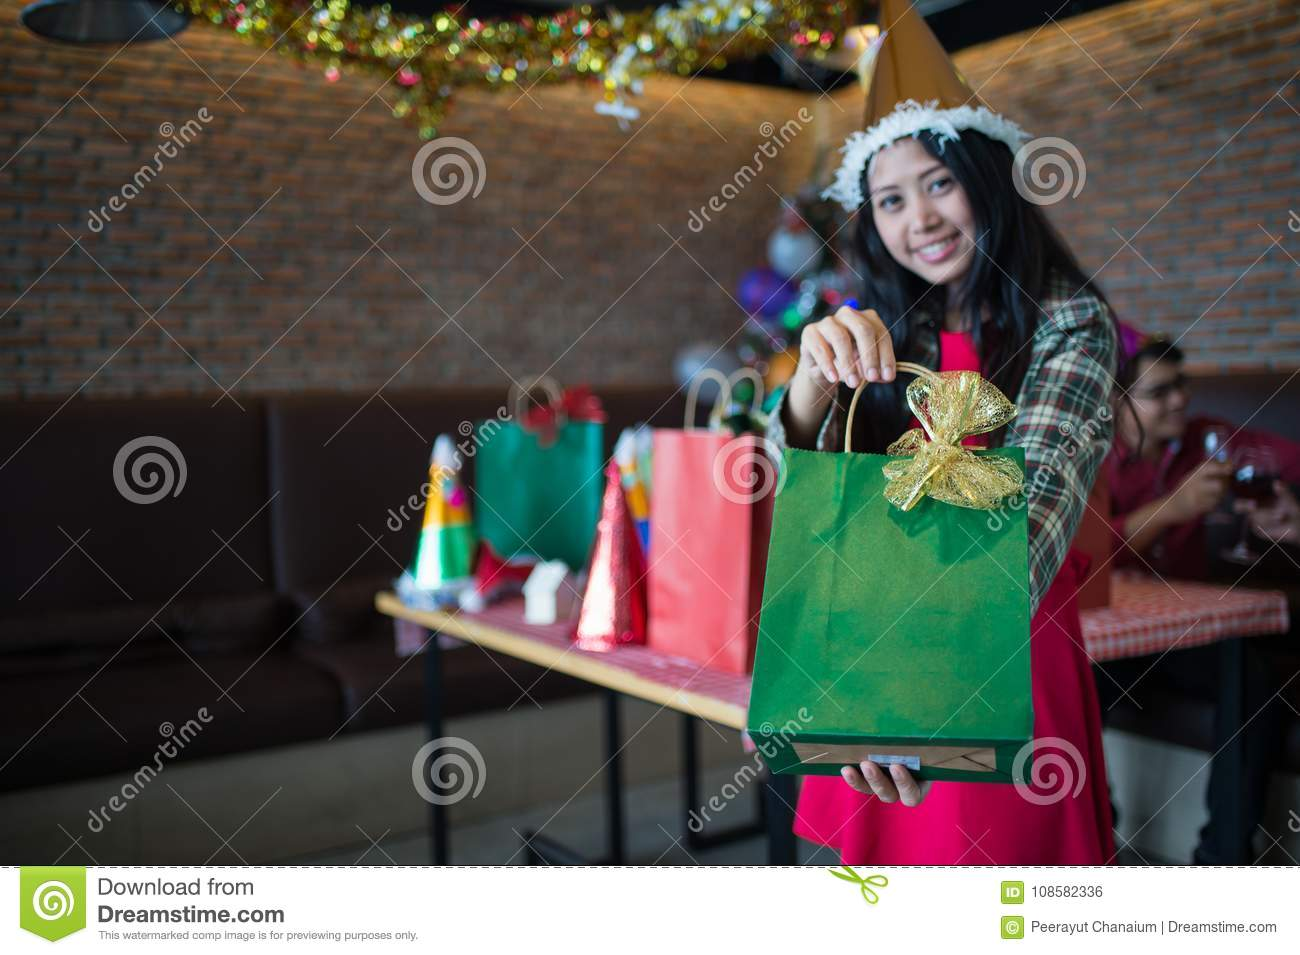 Beautiful woman wear red dress and santa claus hat showing green gift bag on hand at restaurant, Christmas party